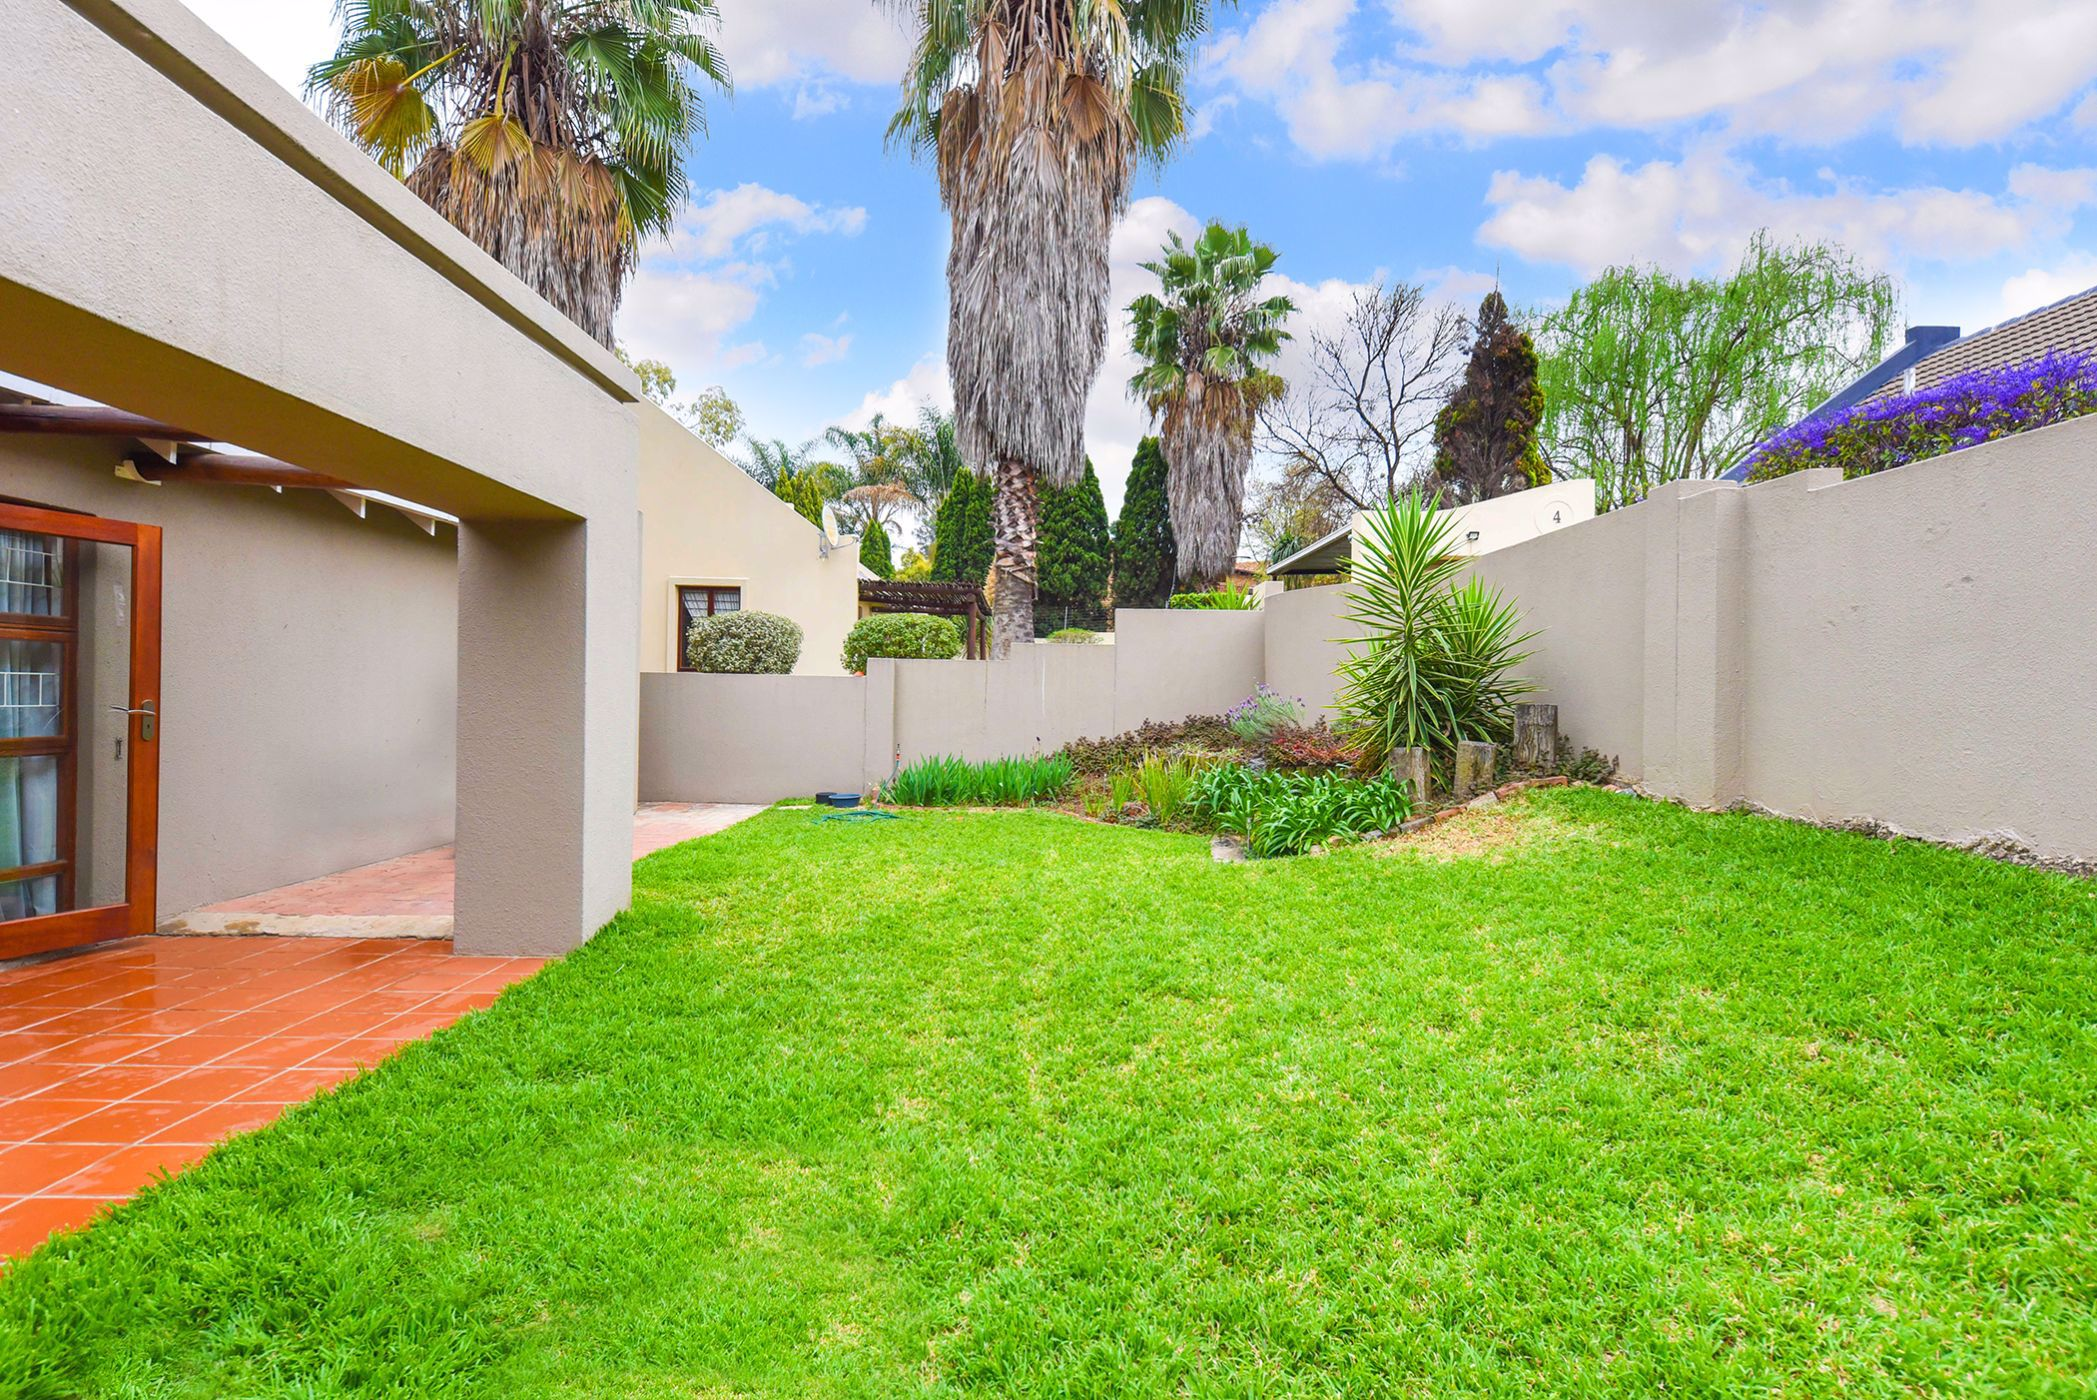 2 bedroom house for sale in Douglasdale